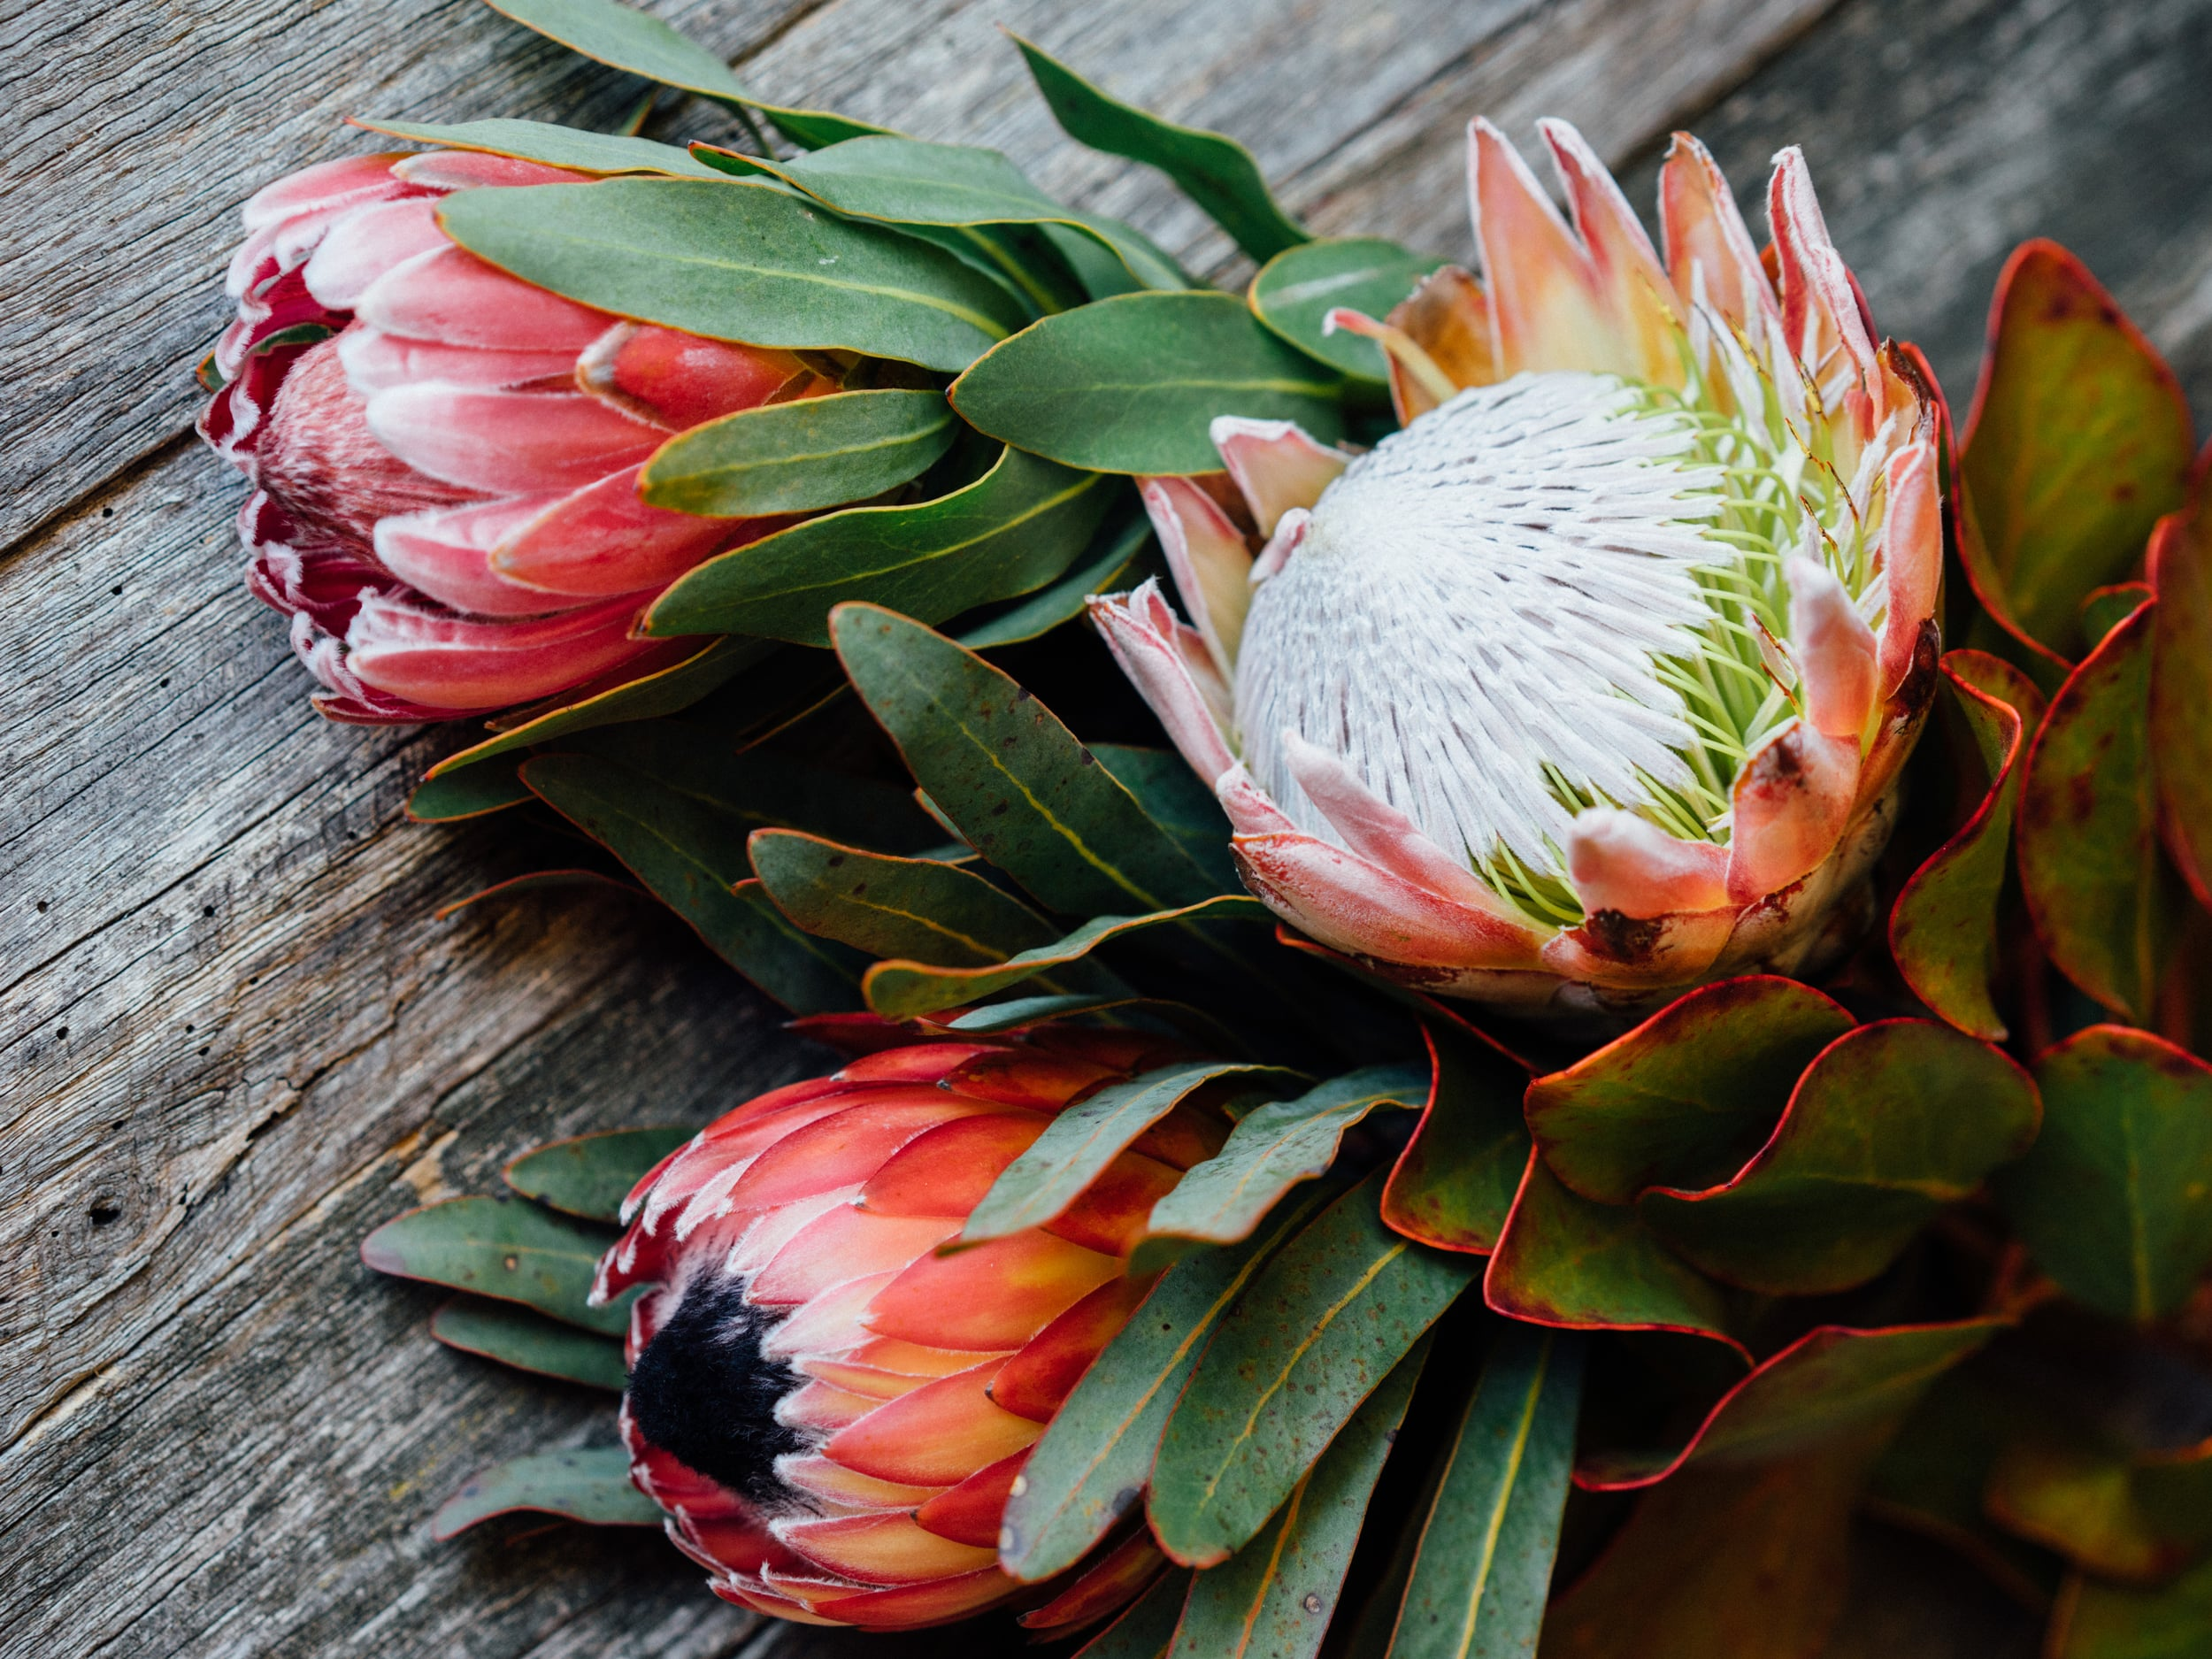 Commercial photo of flowers